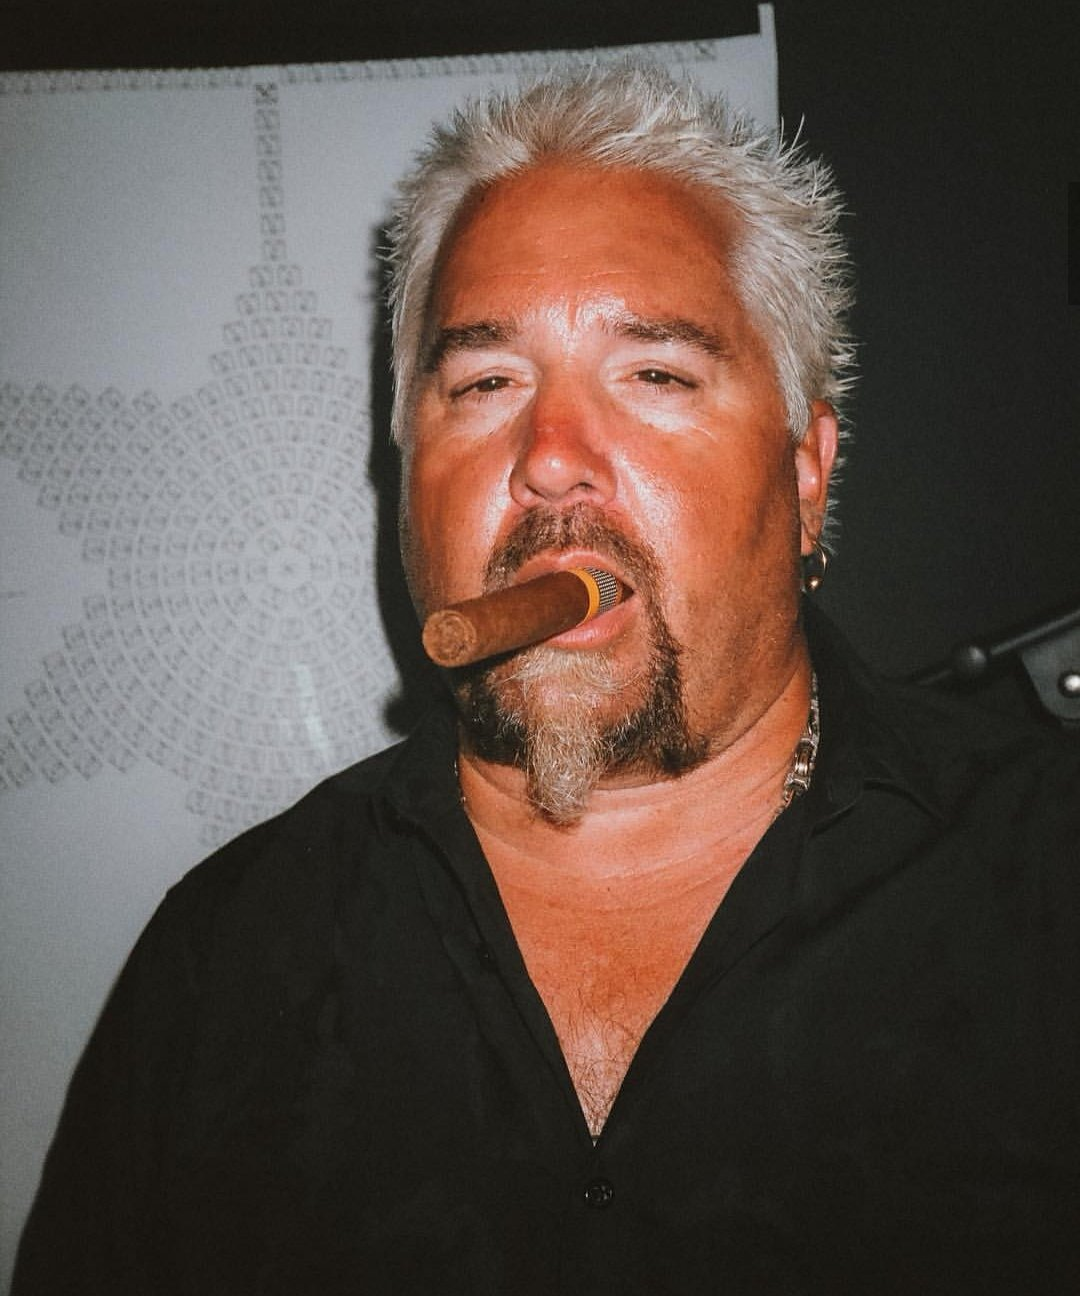 Oh shit bruh happy birthday to the homie guy fieri who be smokin all the burgers